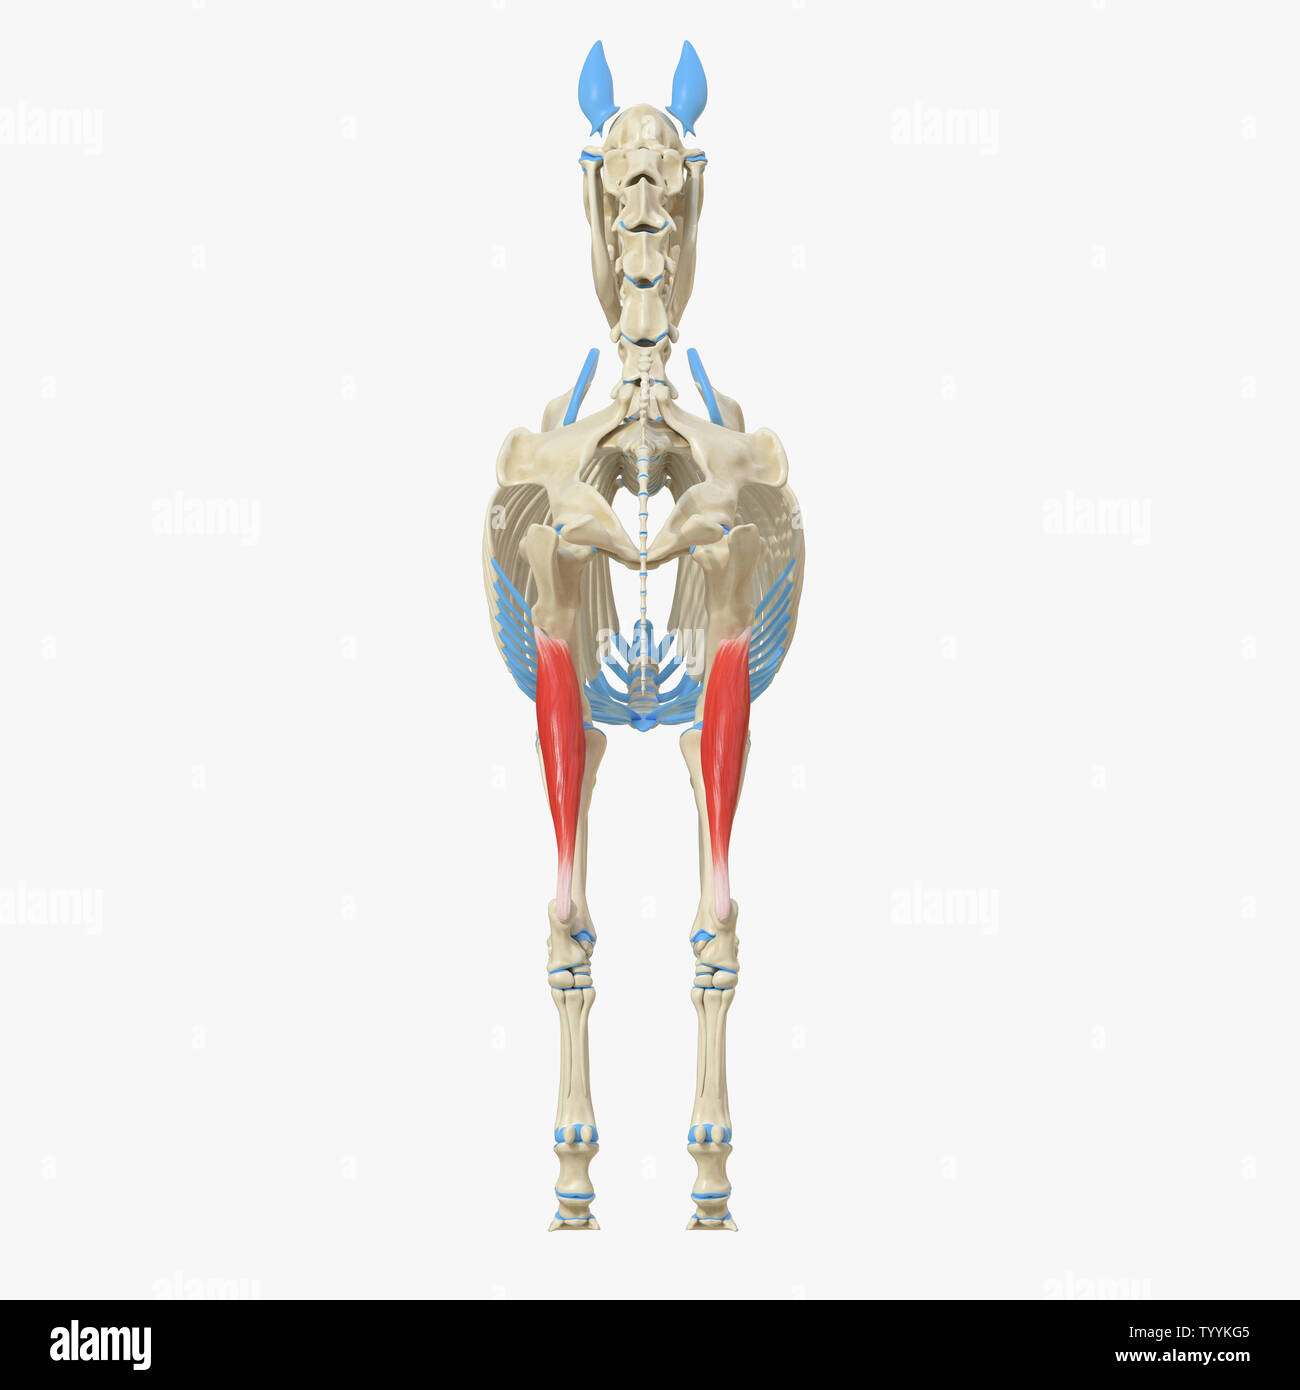 hight resolution of 3d rendered medically accurate illustration of the equine muscle anatomy gastrocnemius